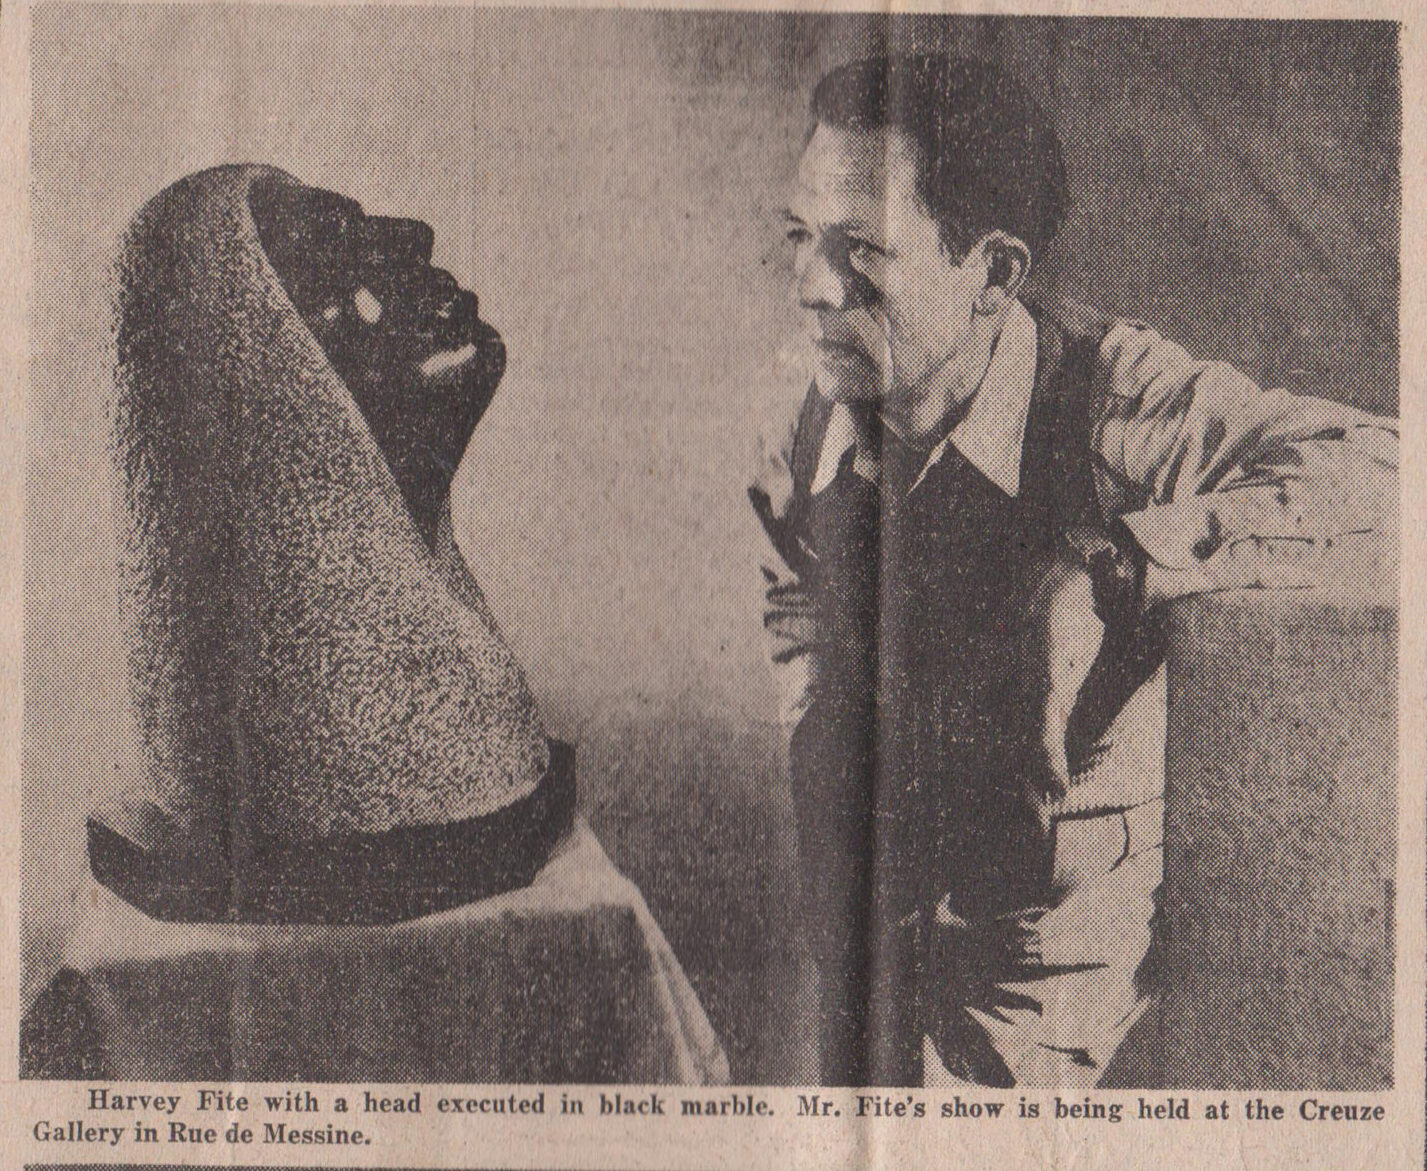 Harvey Fite in New York Times International Edition 1950